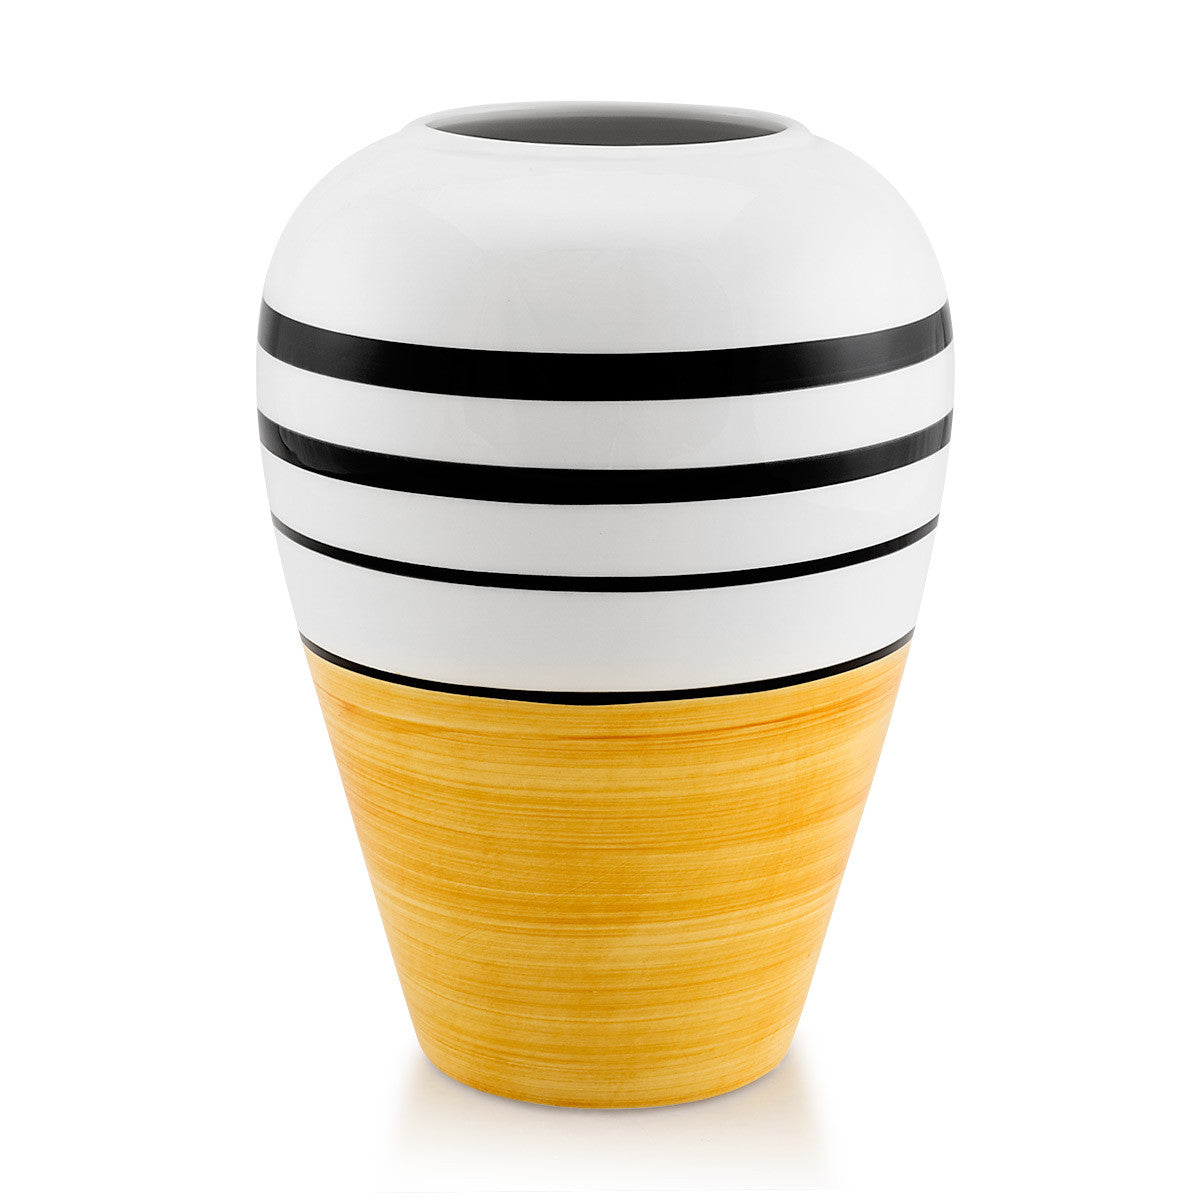 Ceramic modern vase yellow color, black lines, handmade pottery